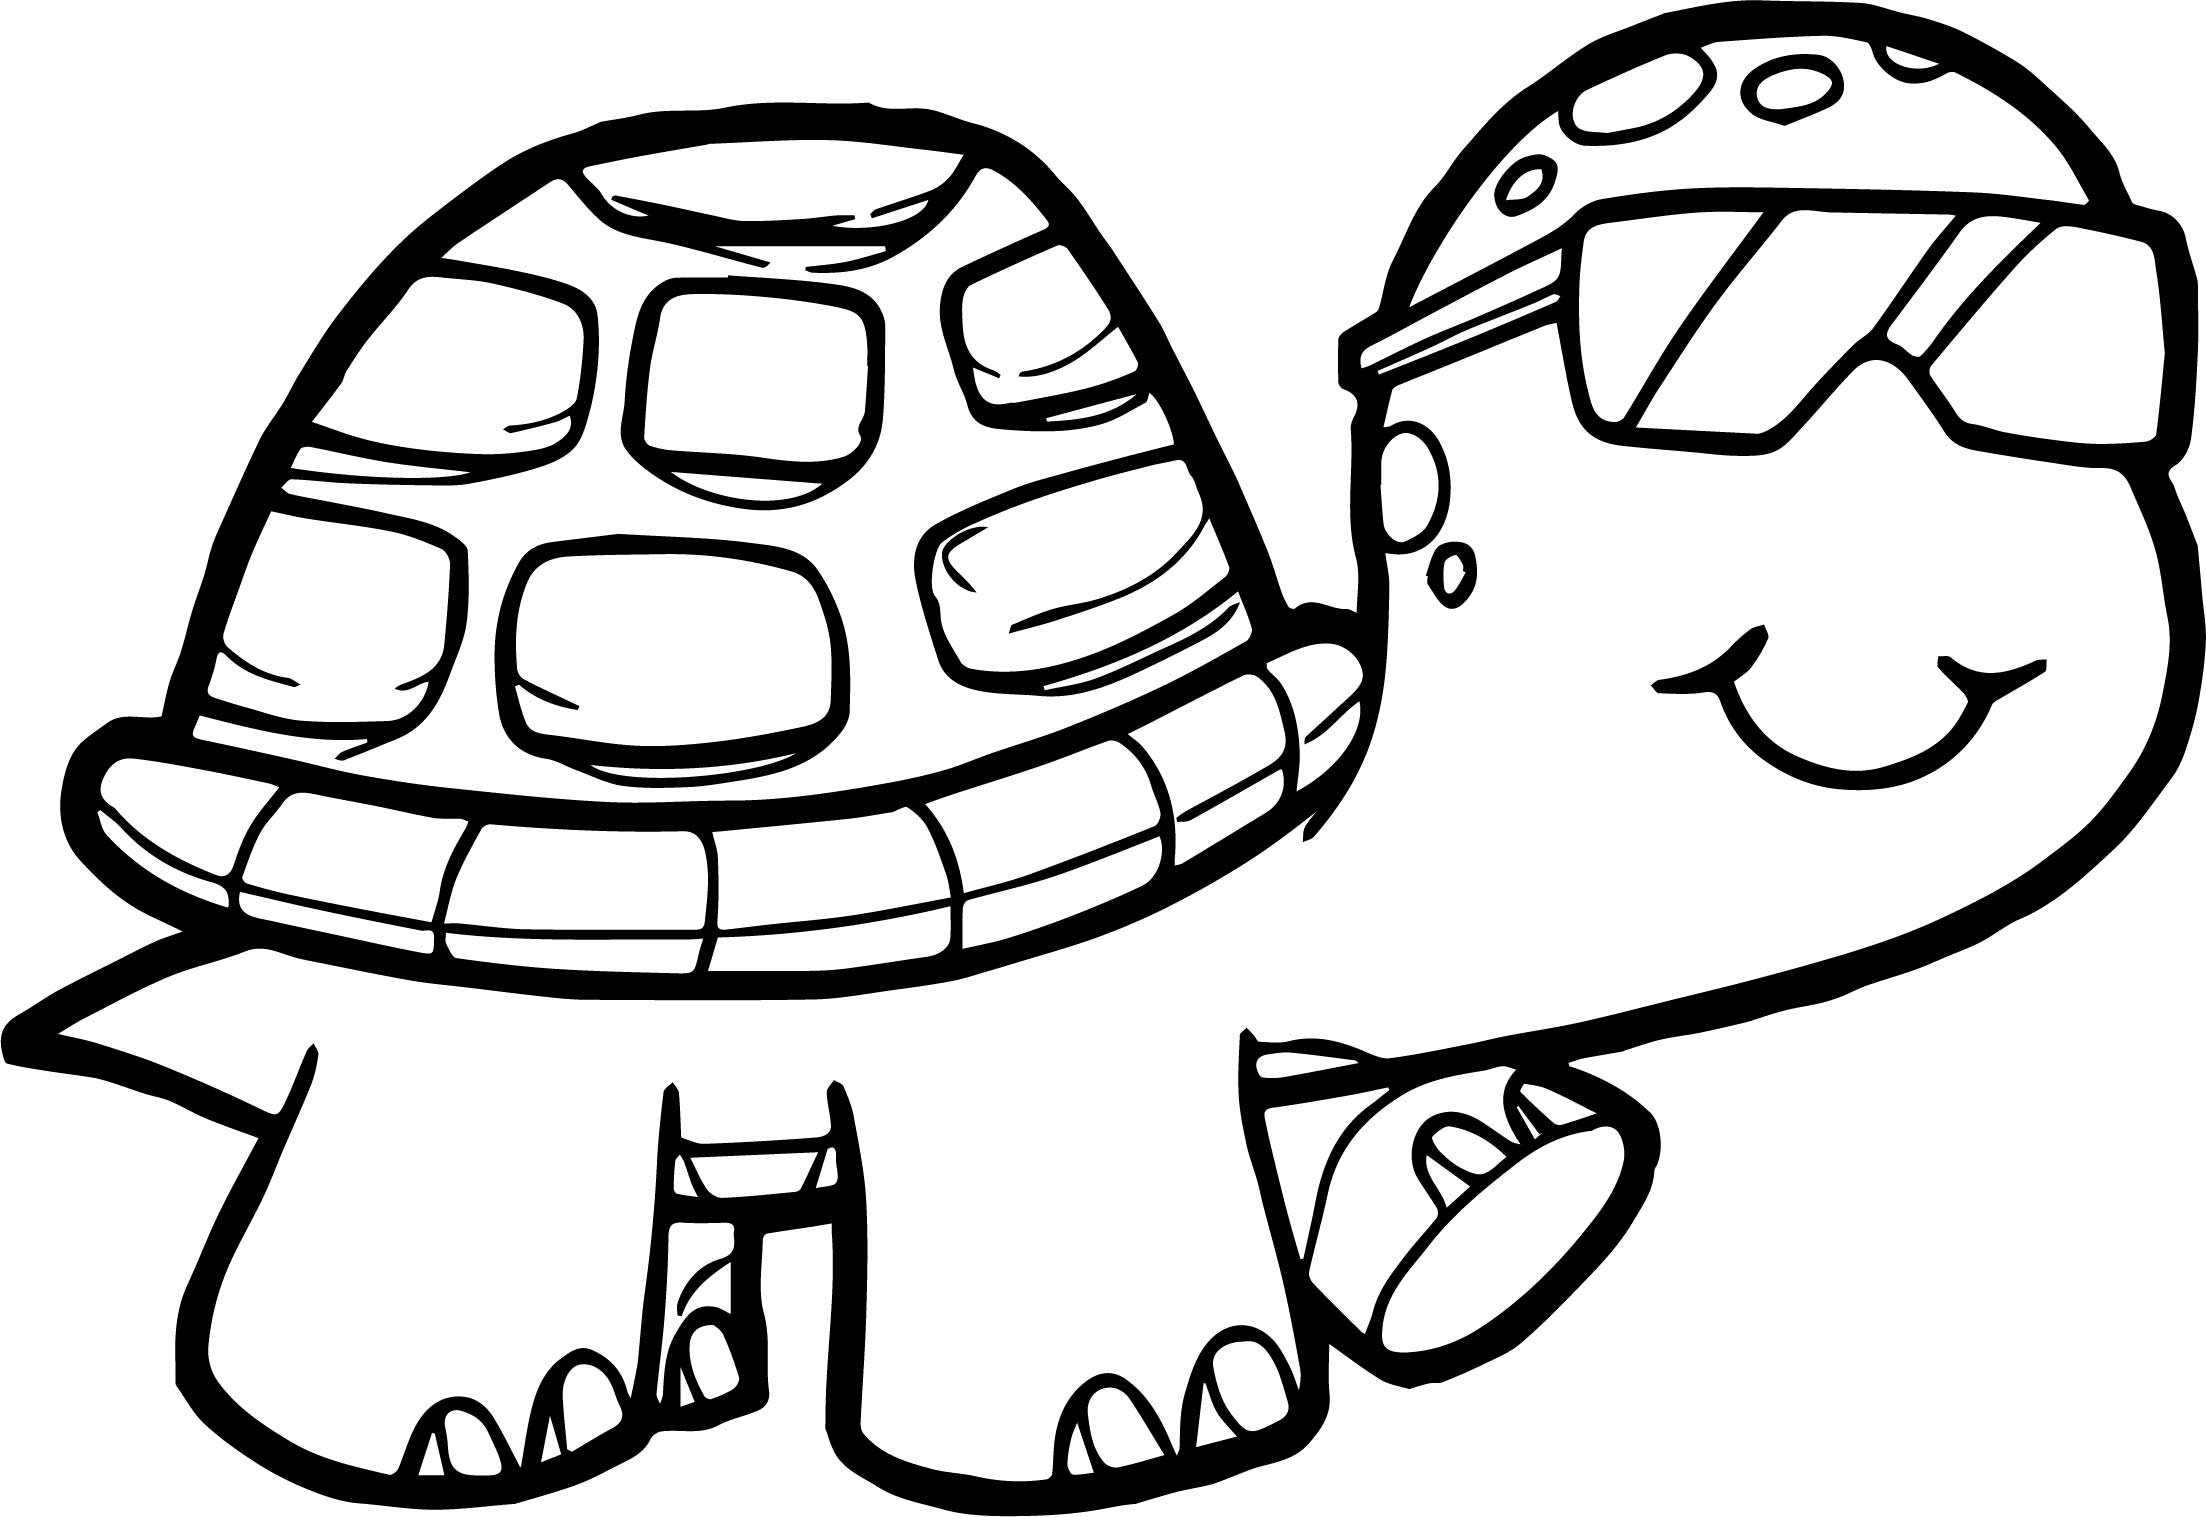 2206x1517 Coloring Pages Turtle In Tiny Draw Image Glasses Tortoise Page